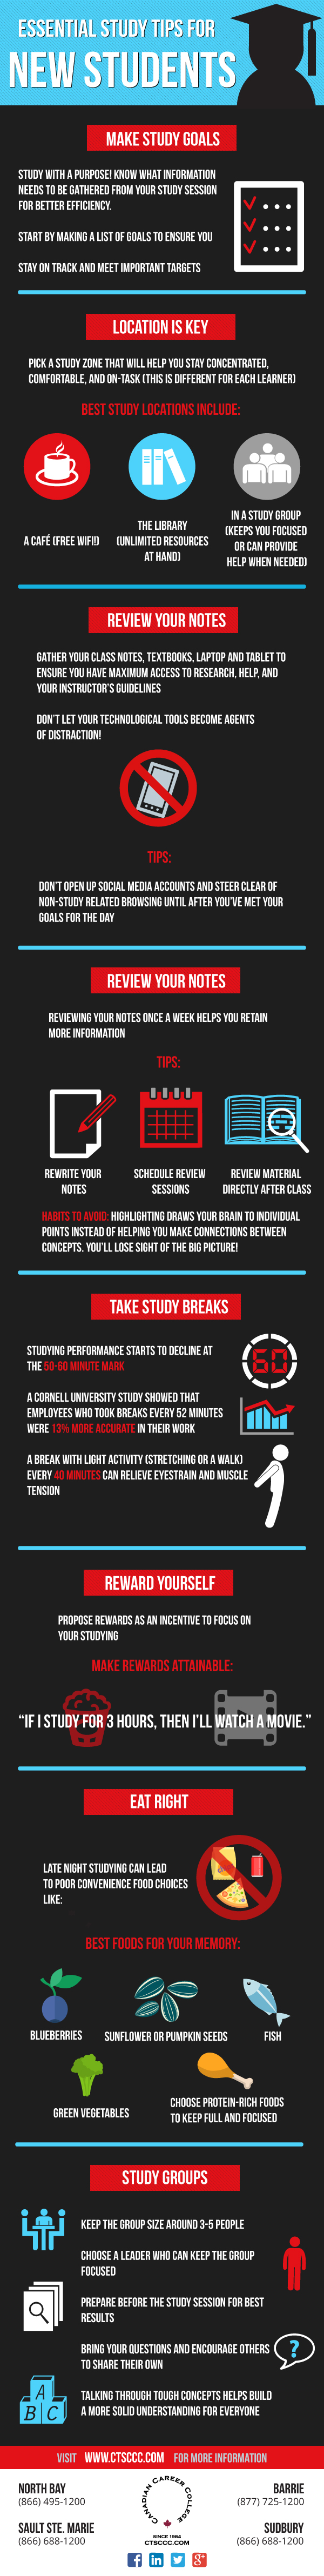 Infographic – Essential Study Tips for New Students